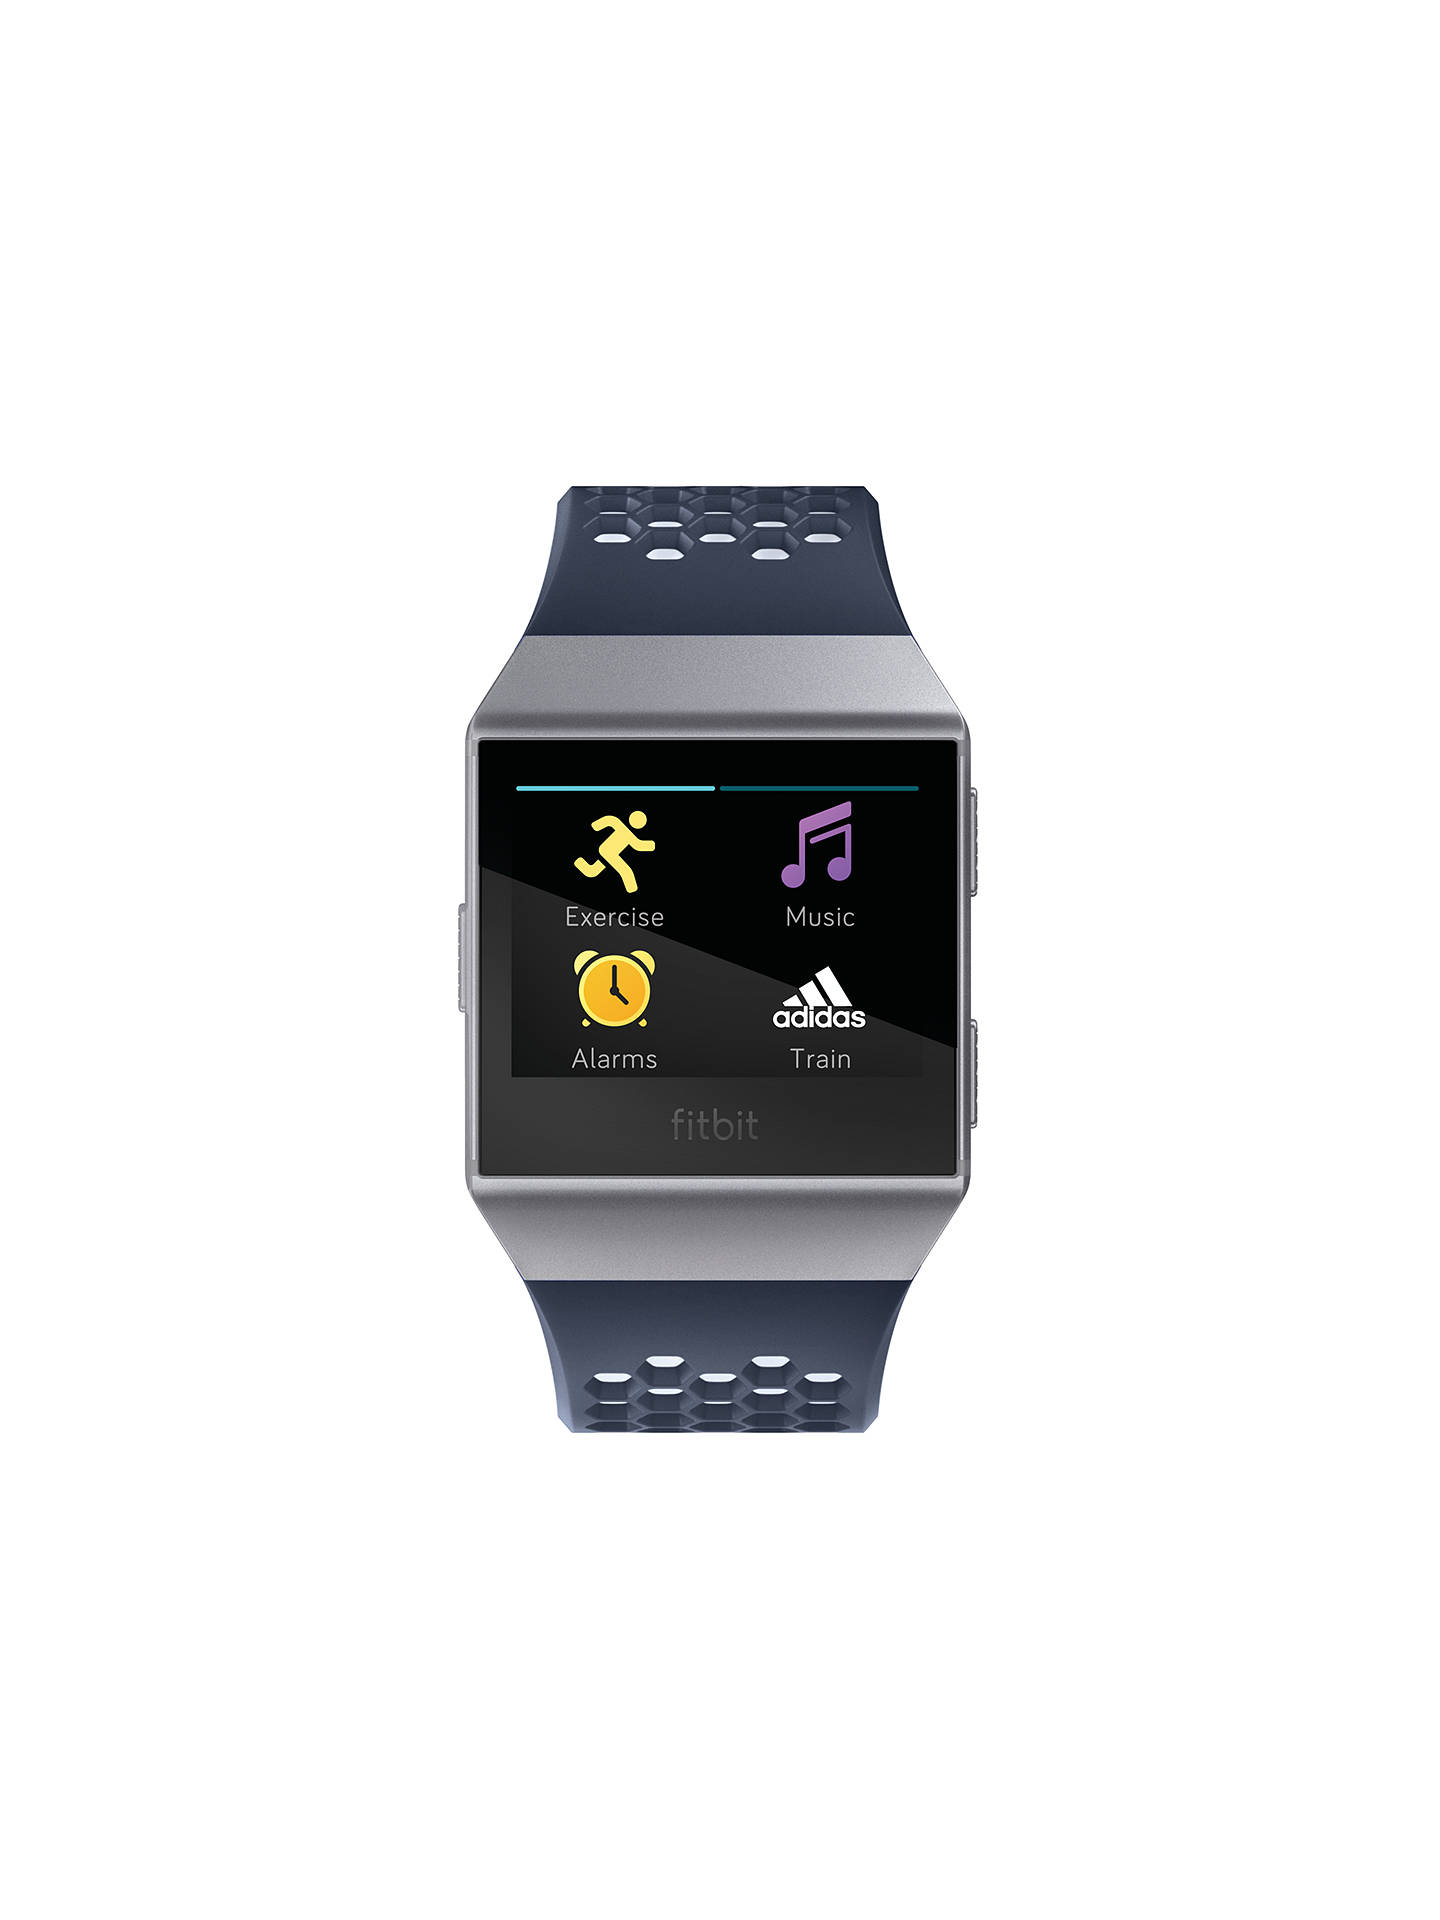 Fitbit Ionic: Adidas Edition adds some extra coaching modes